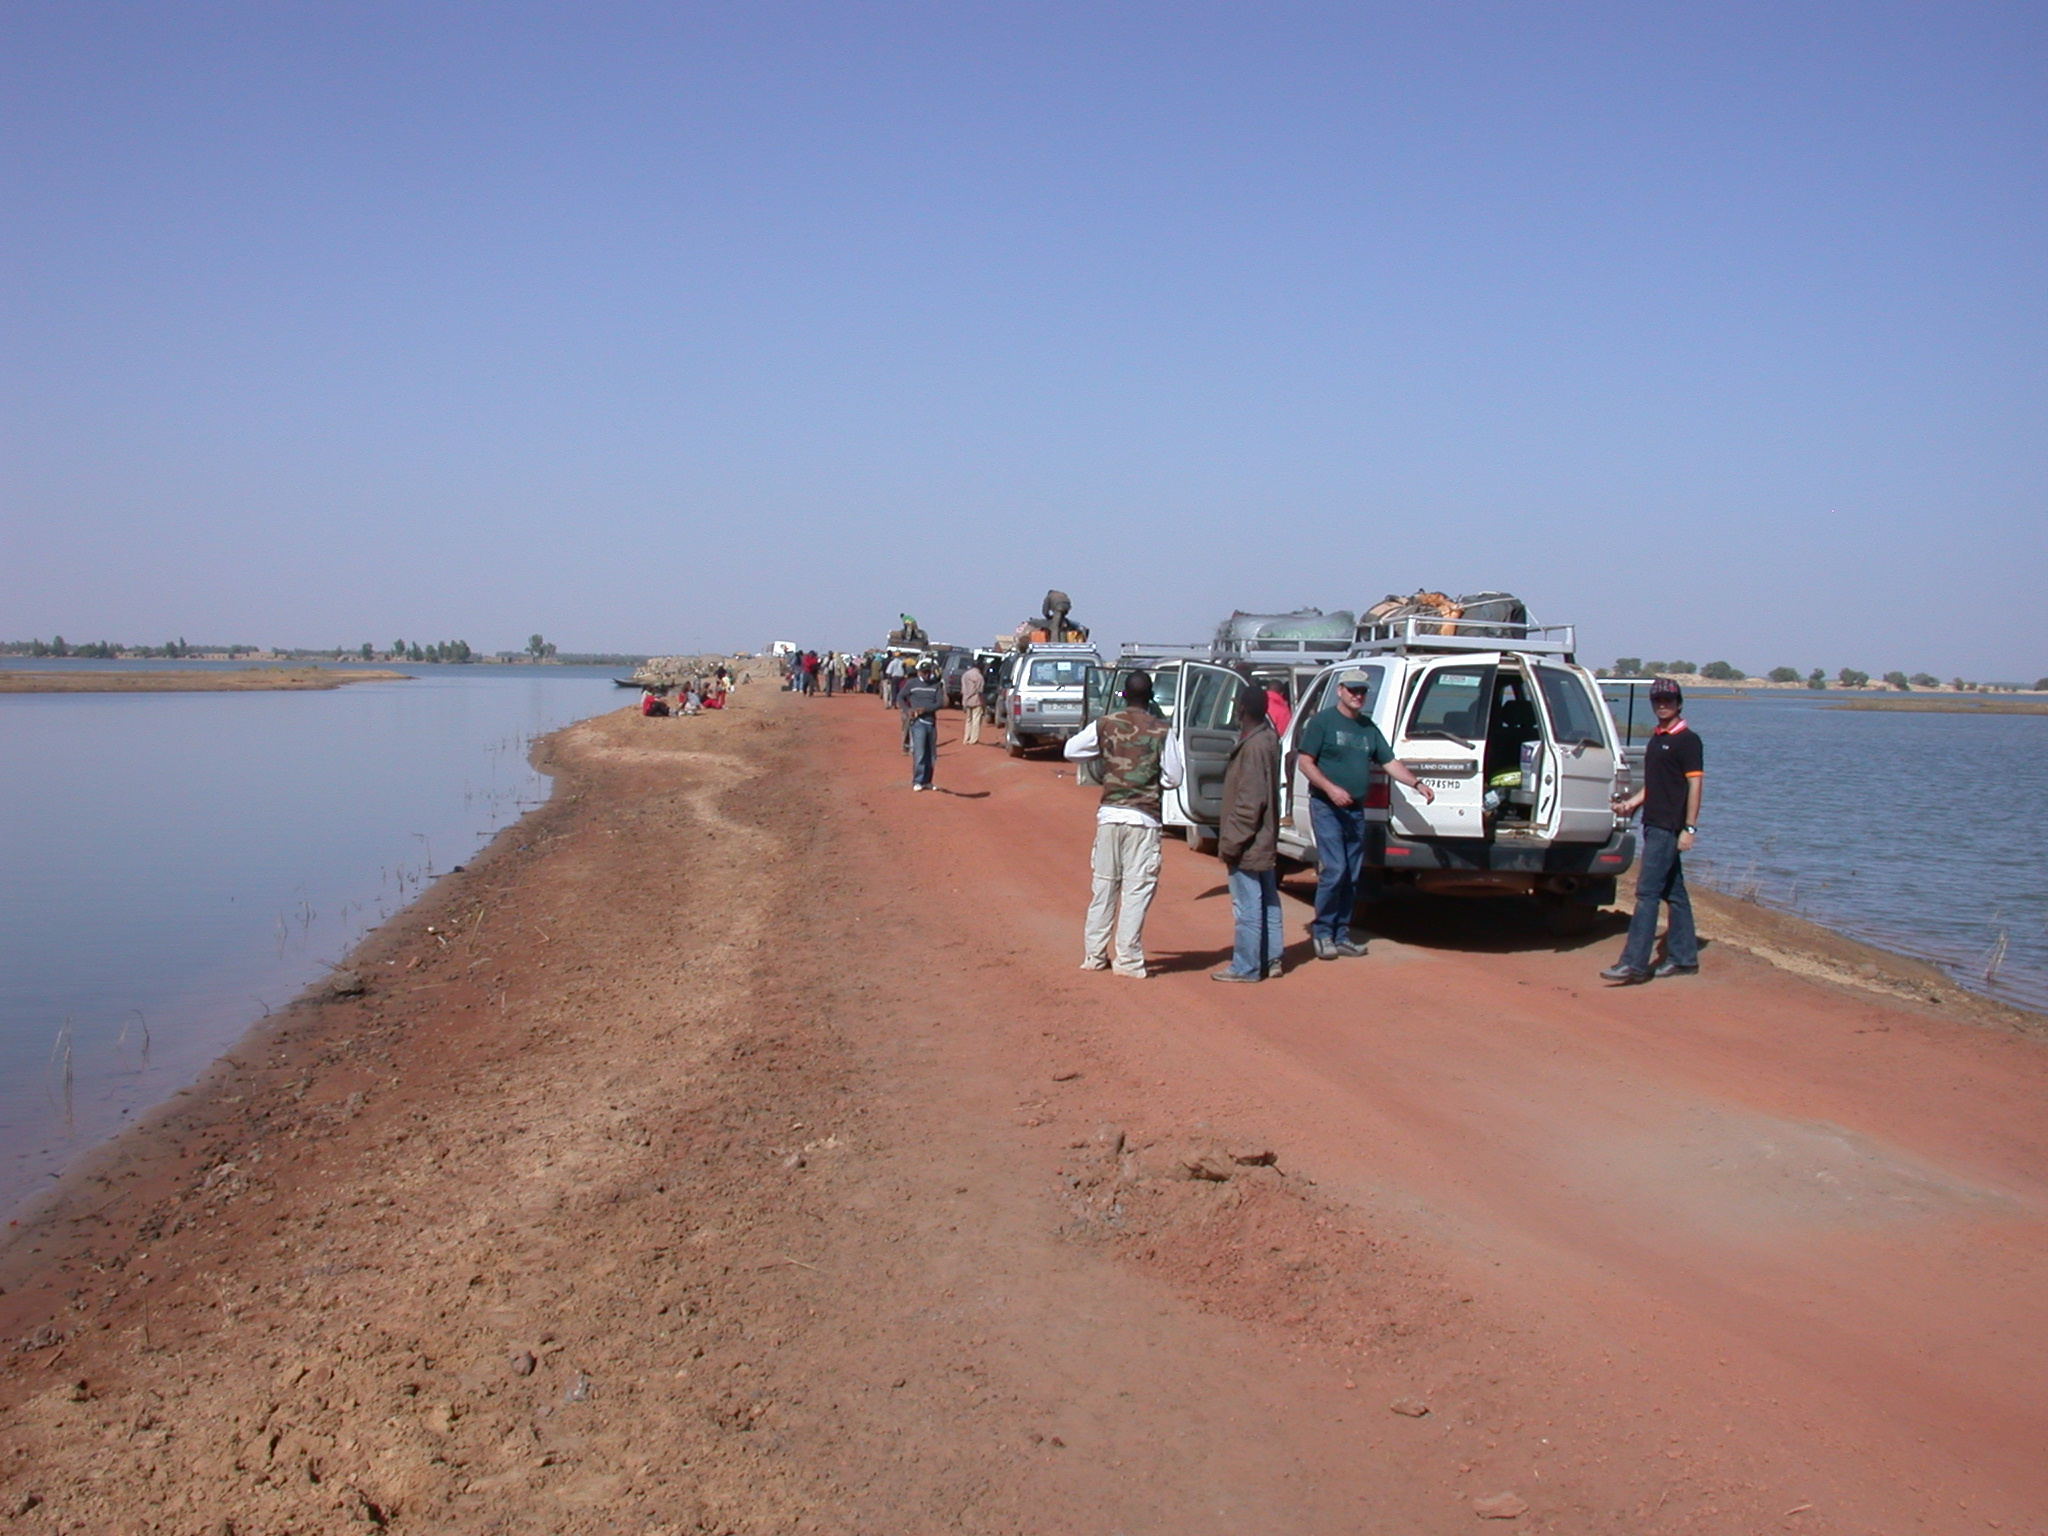 Queue for Ferry Boats to Timbuktu, Mali